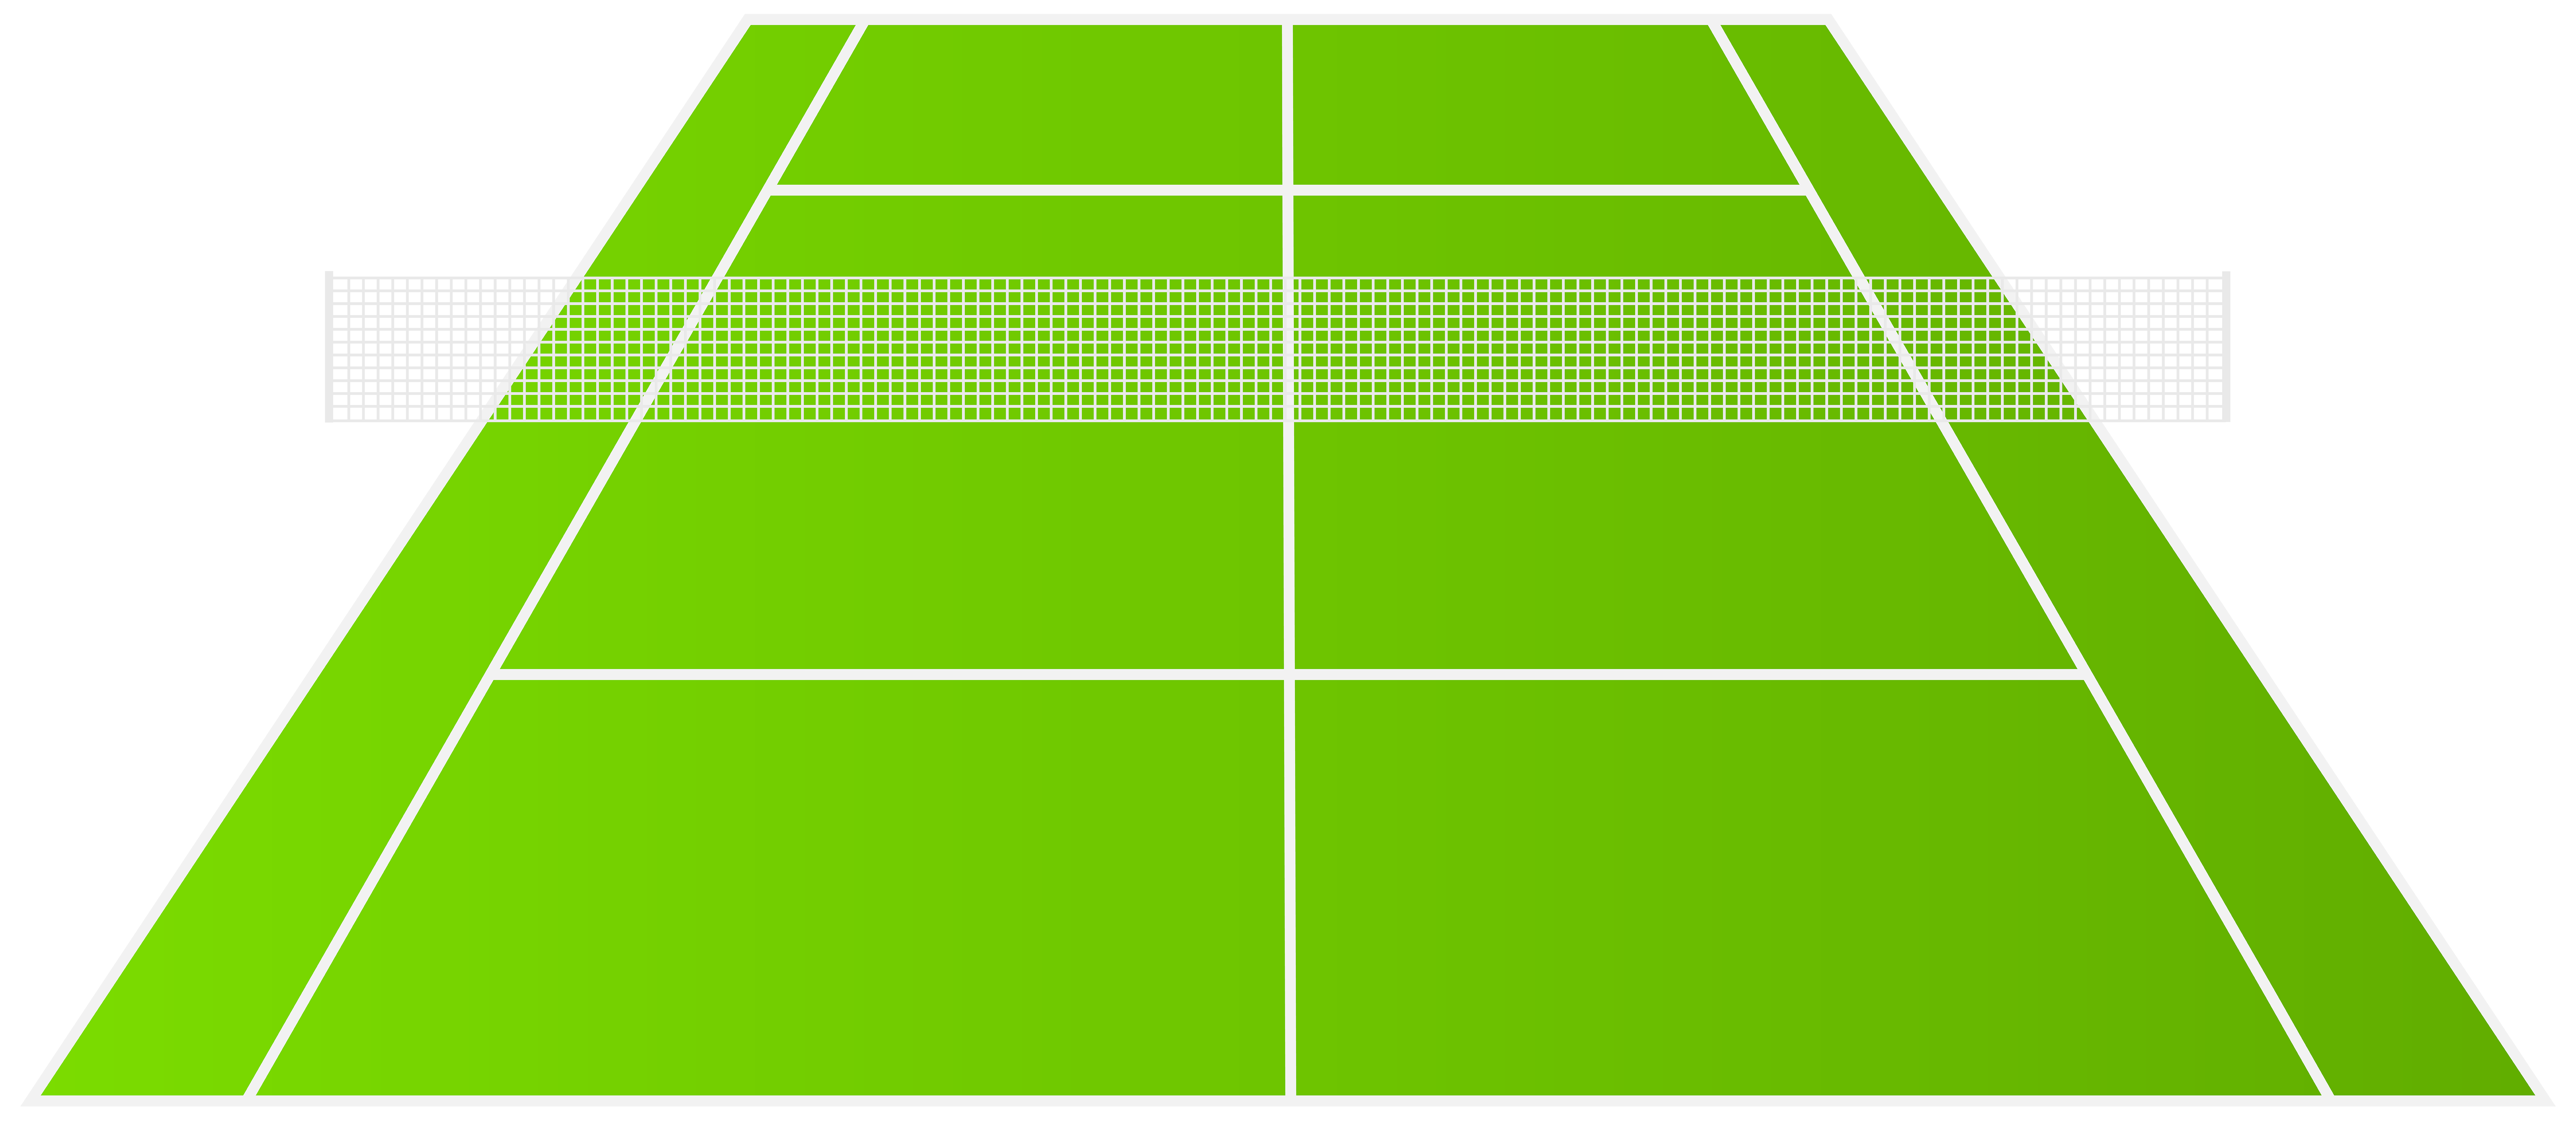 vector library library Clip art image gallery. Tennis court clipart